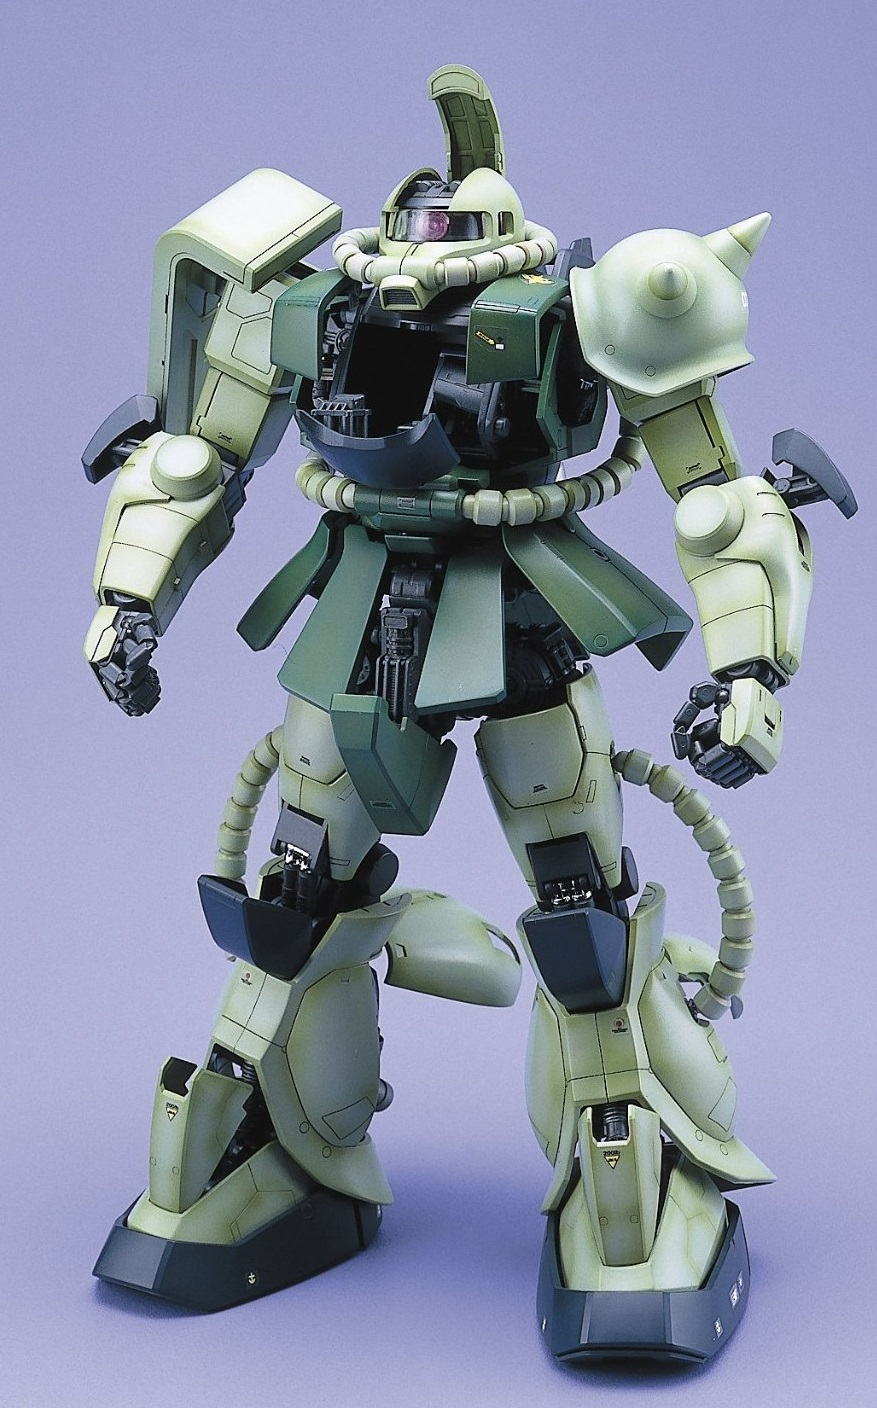 PG 1/60 Zaku II MS-06F - Model Kit image